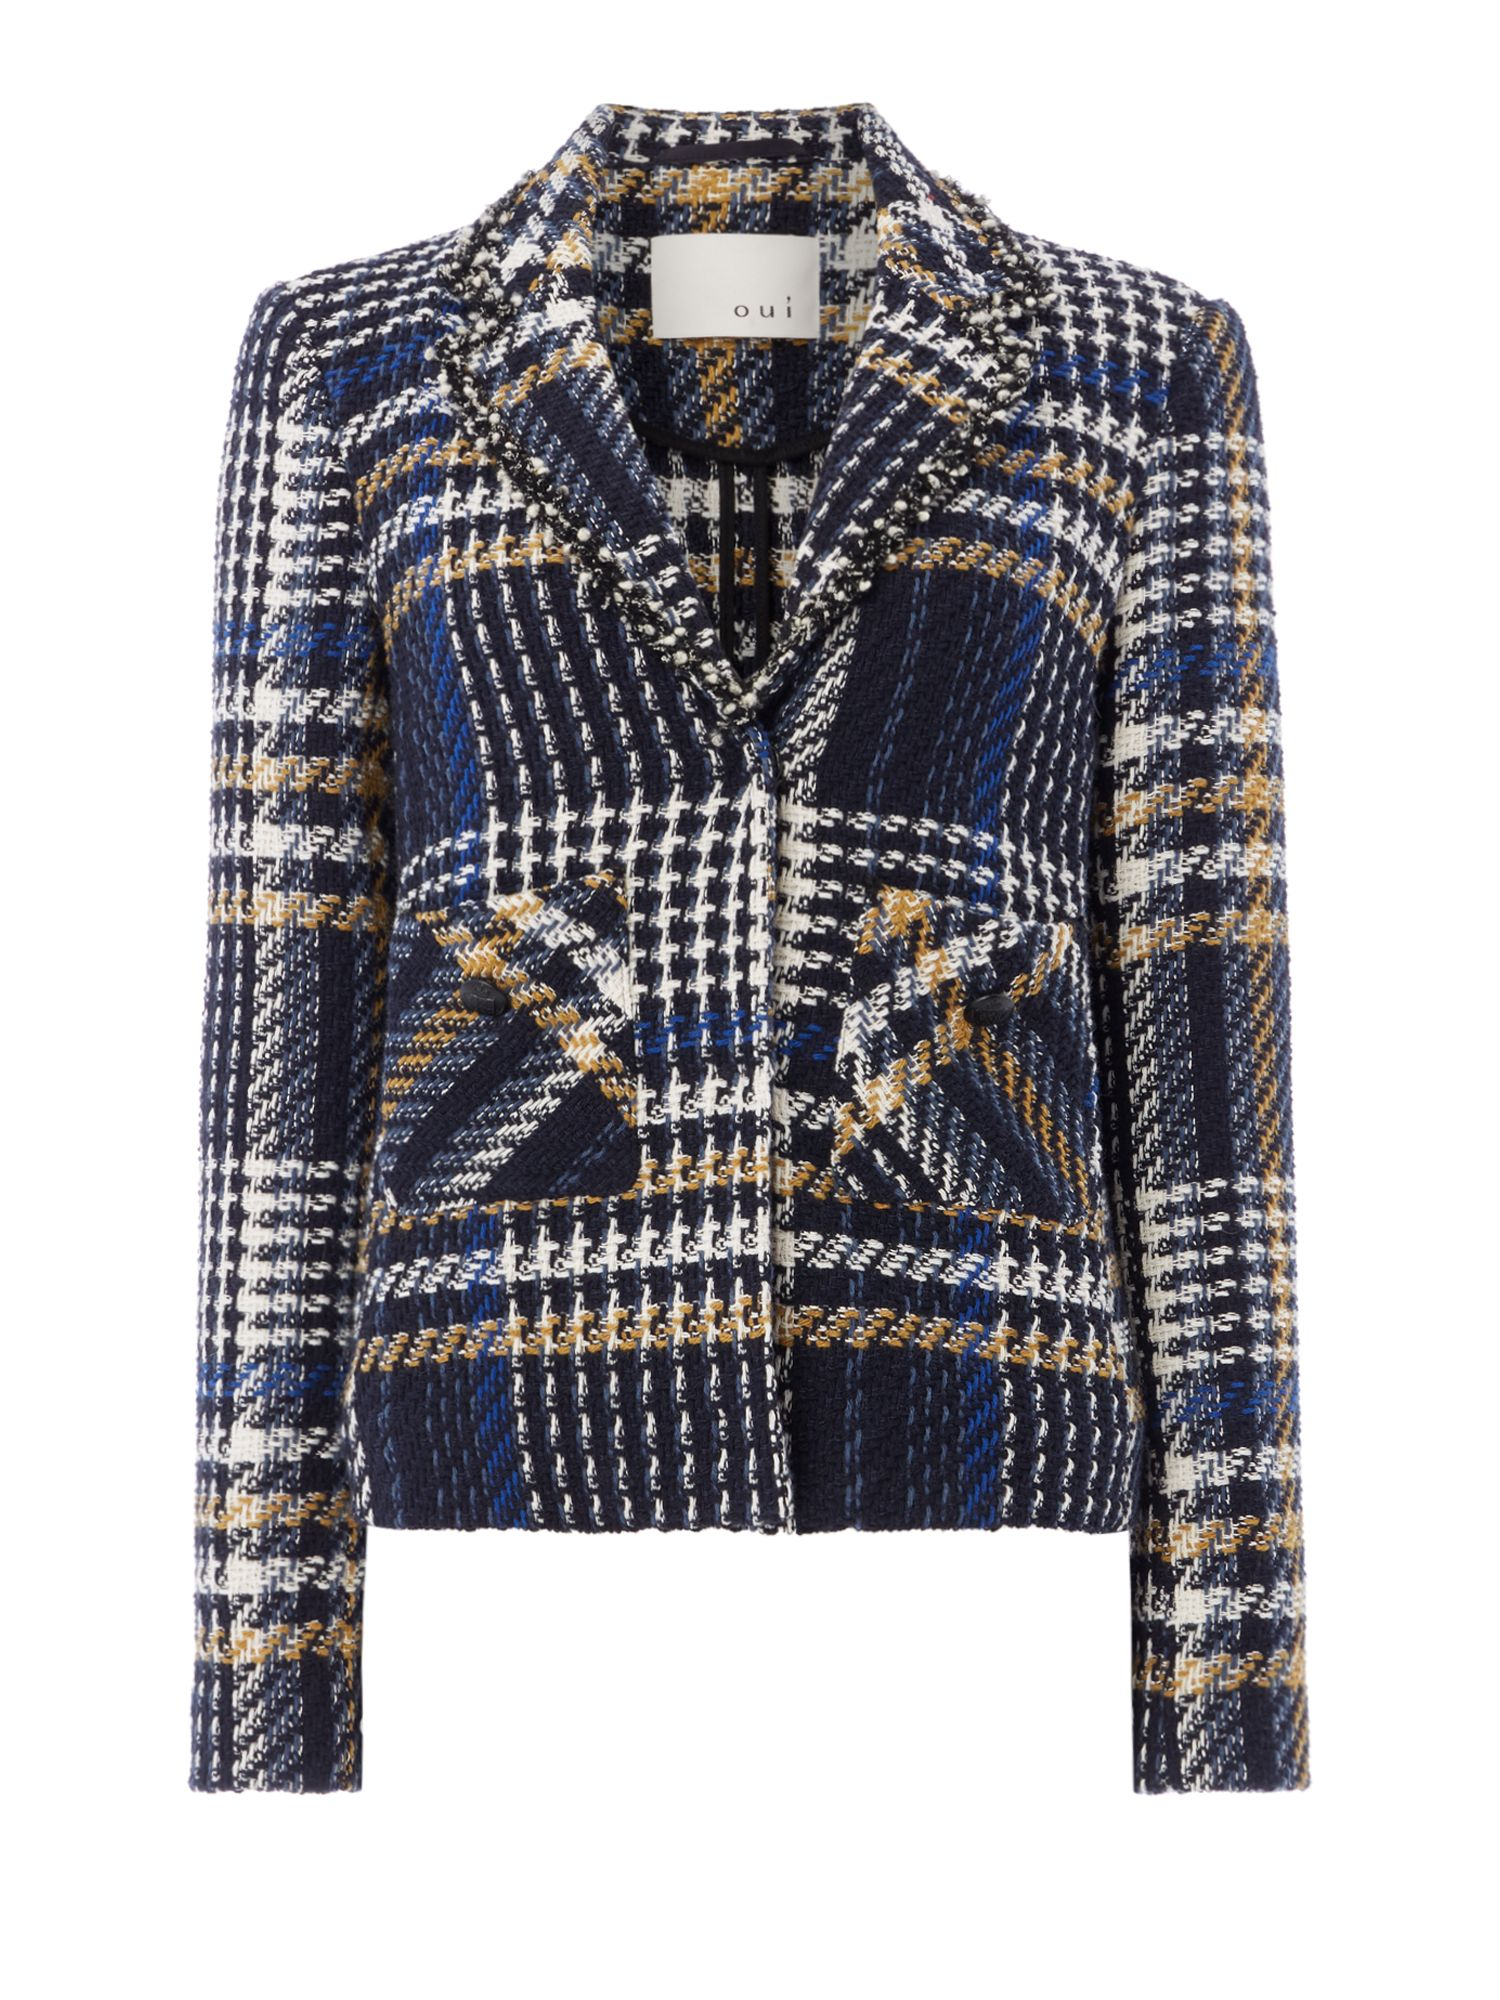 Oui Tweed jacket, Dark Blue